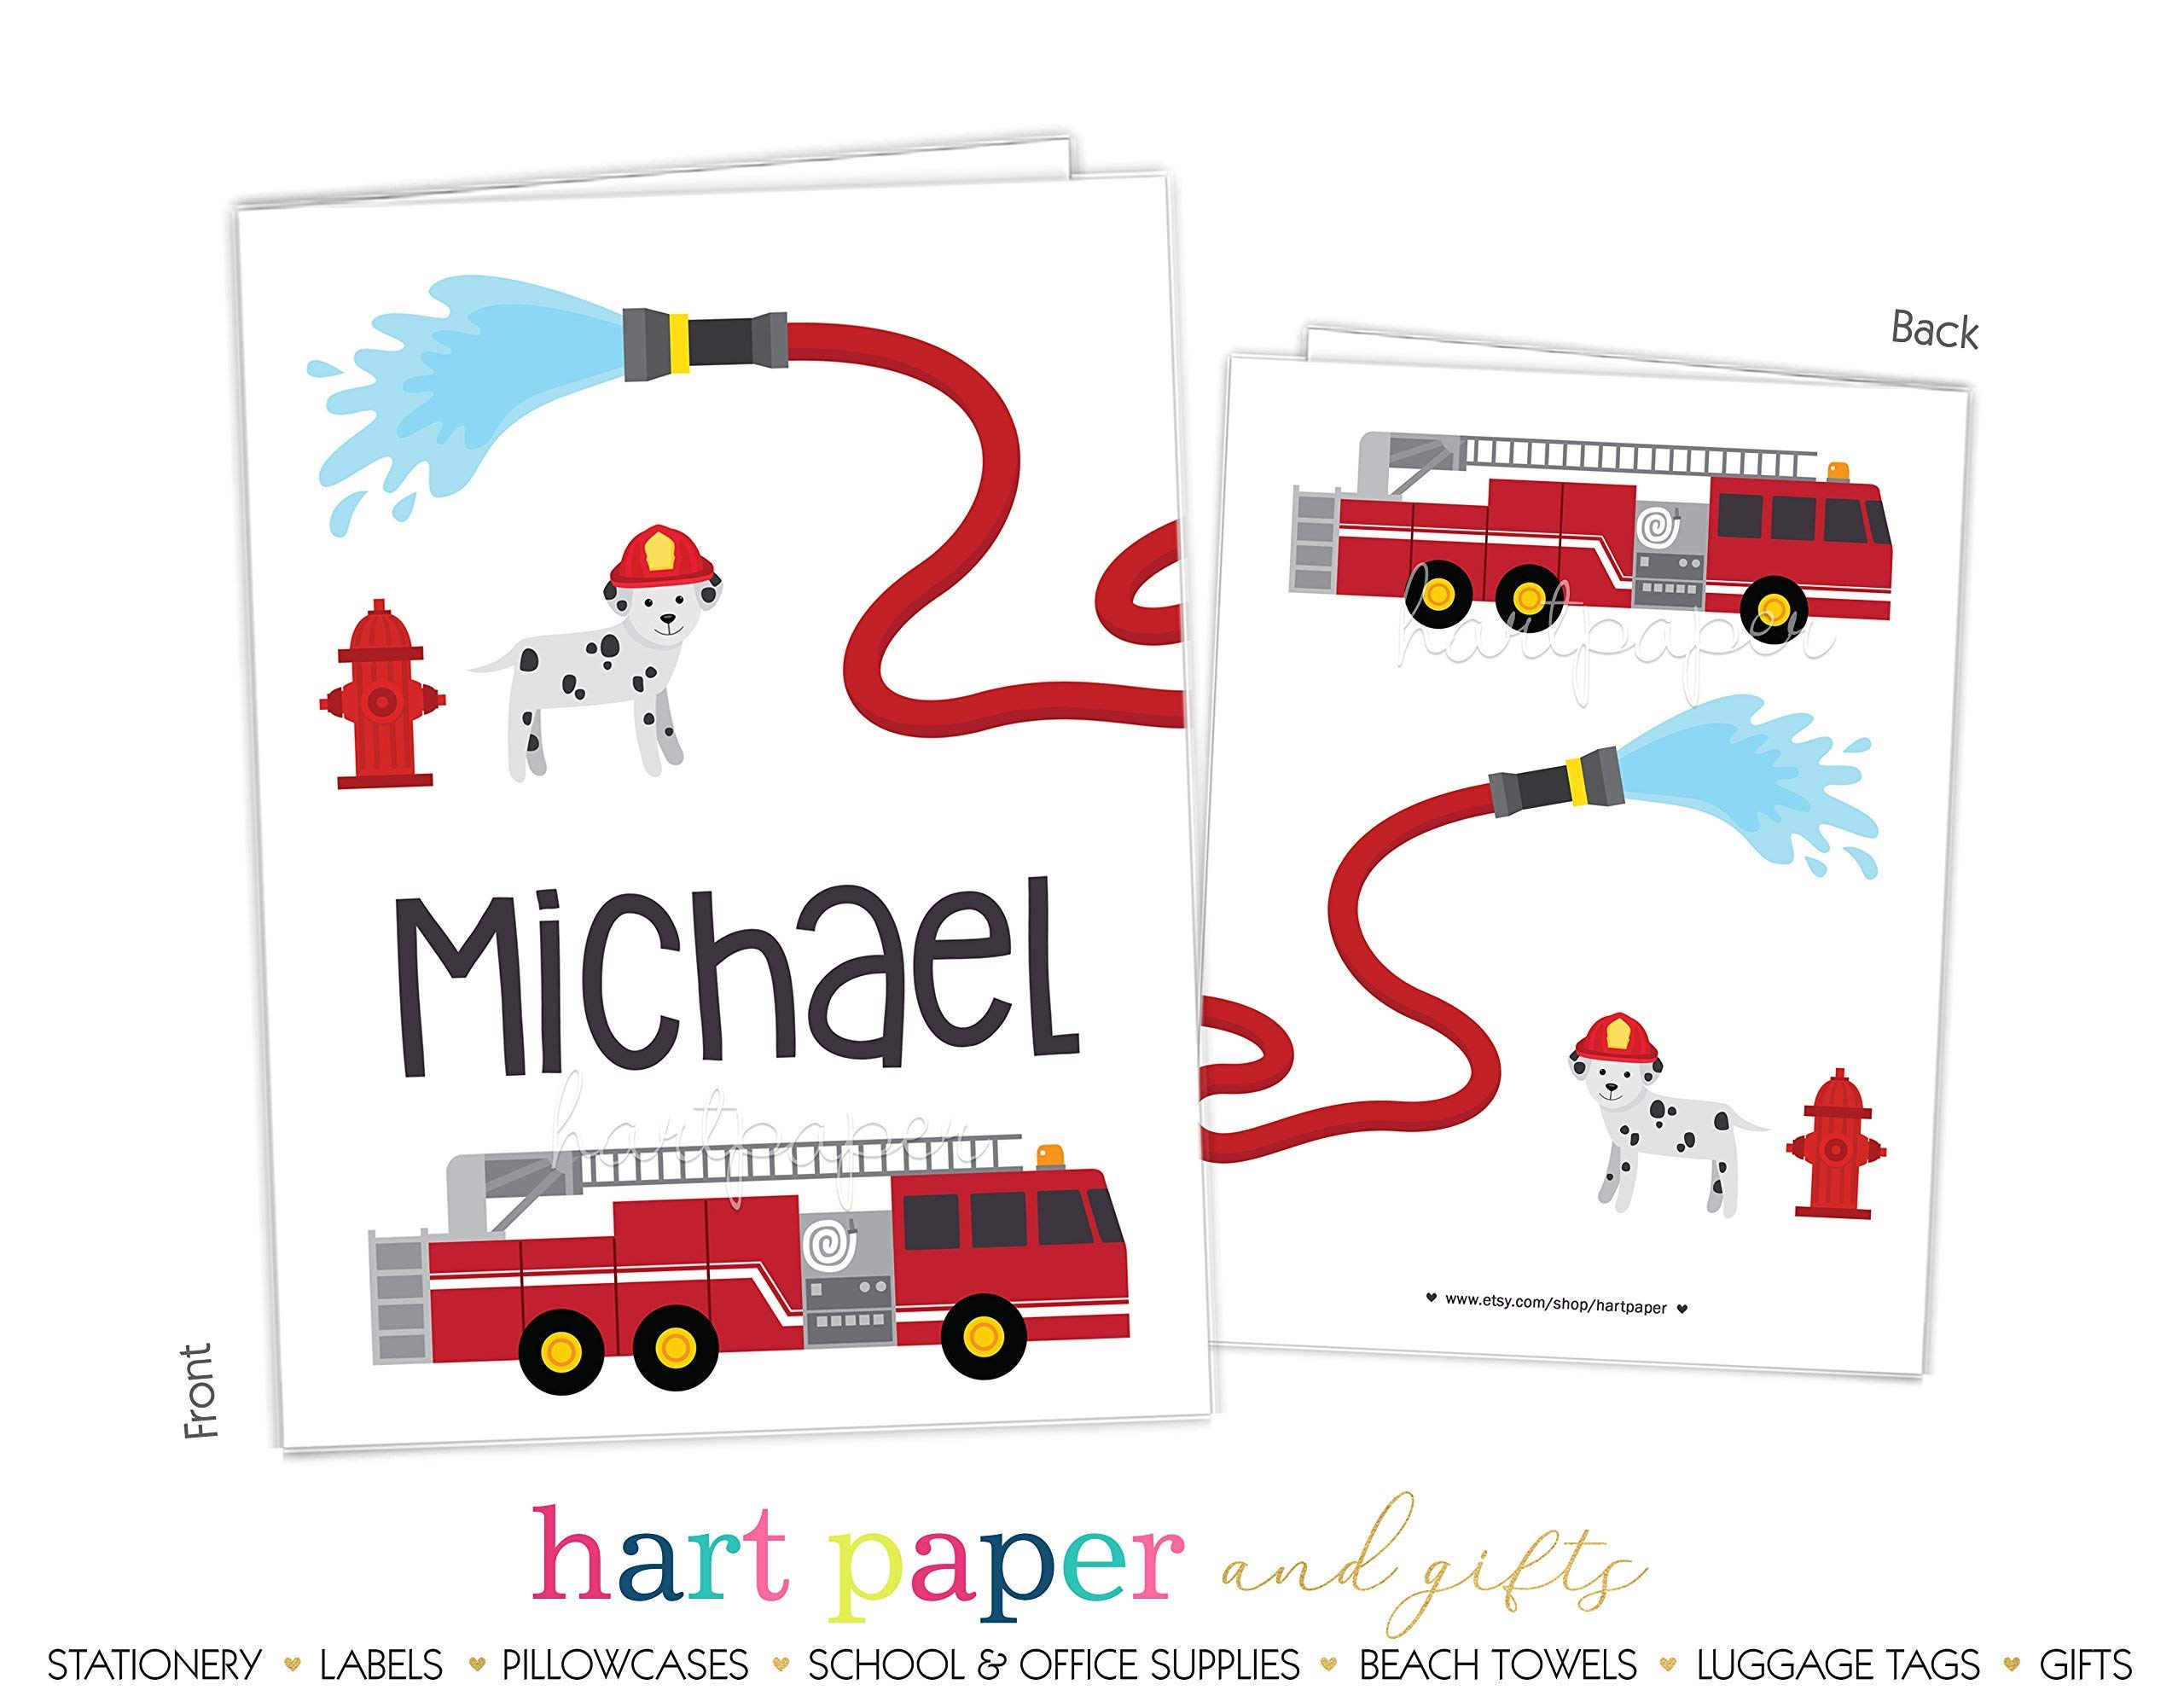 Firetruck Fire Truck 2 Pocket Folder Gift Name Back to School Supplies Teacher Office Birthday Girl Kids Custom Personalized Custom